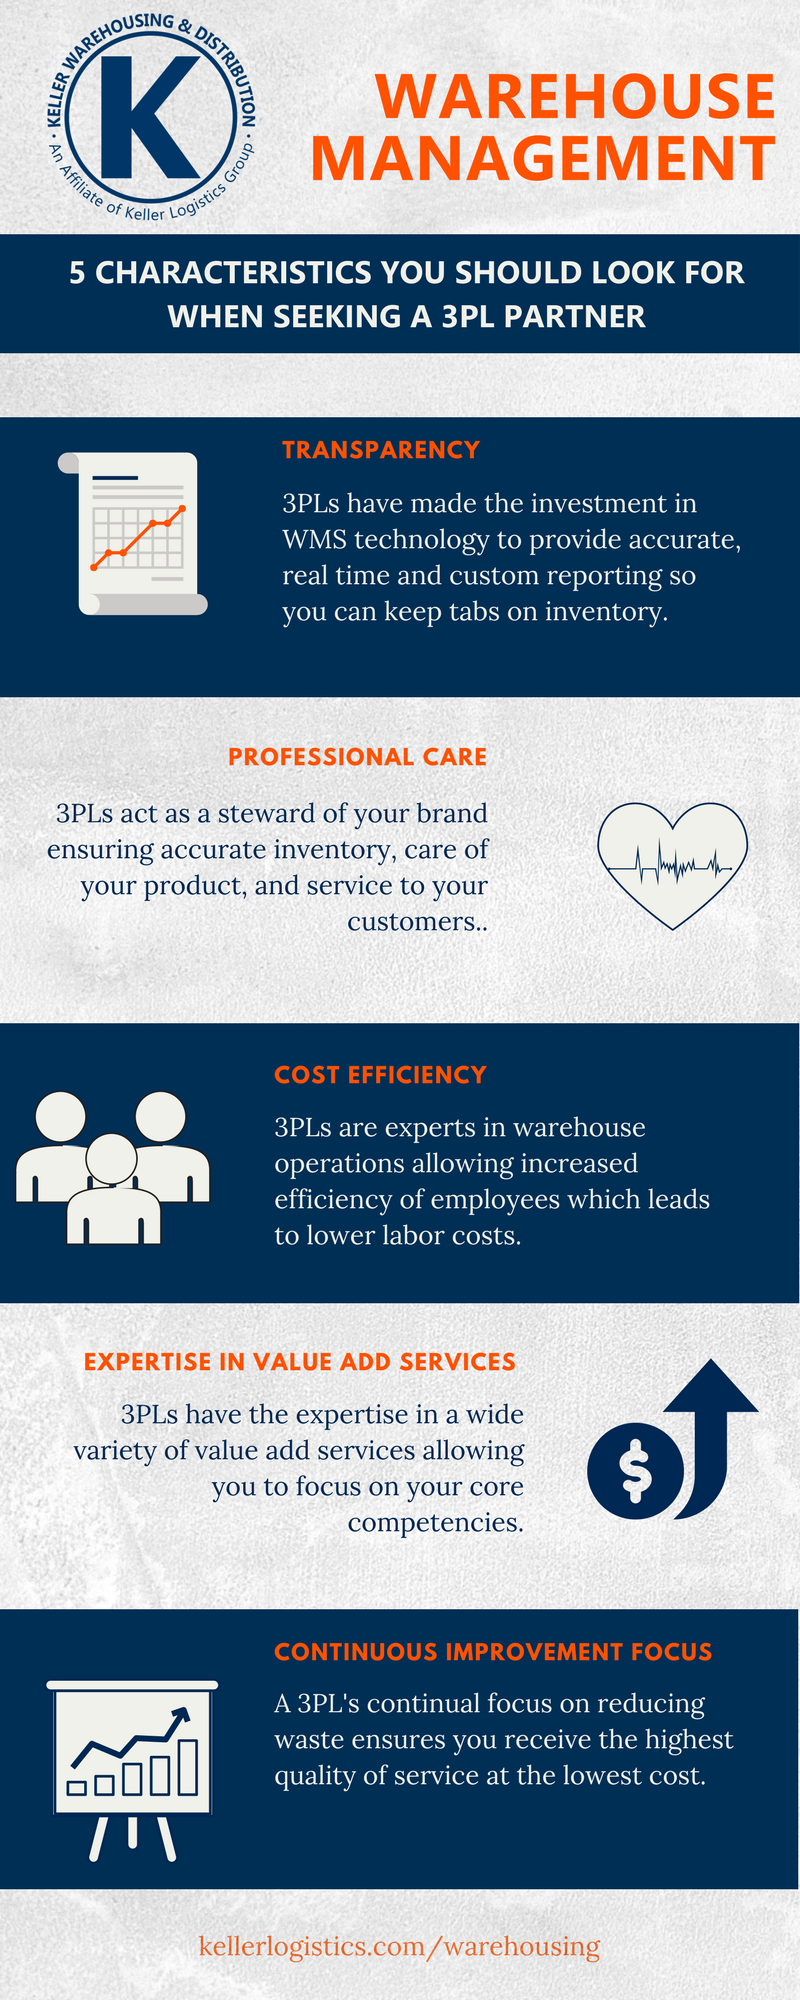 5 Characteristics in a 3PL Partner: Transparency, Professional Care, Cost Efficiency, Expertise in Value Add Services and a focus on Continuous Improvement